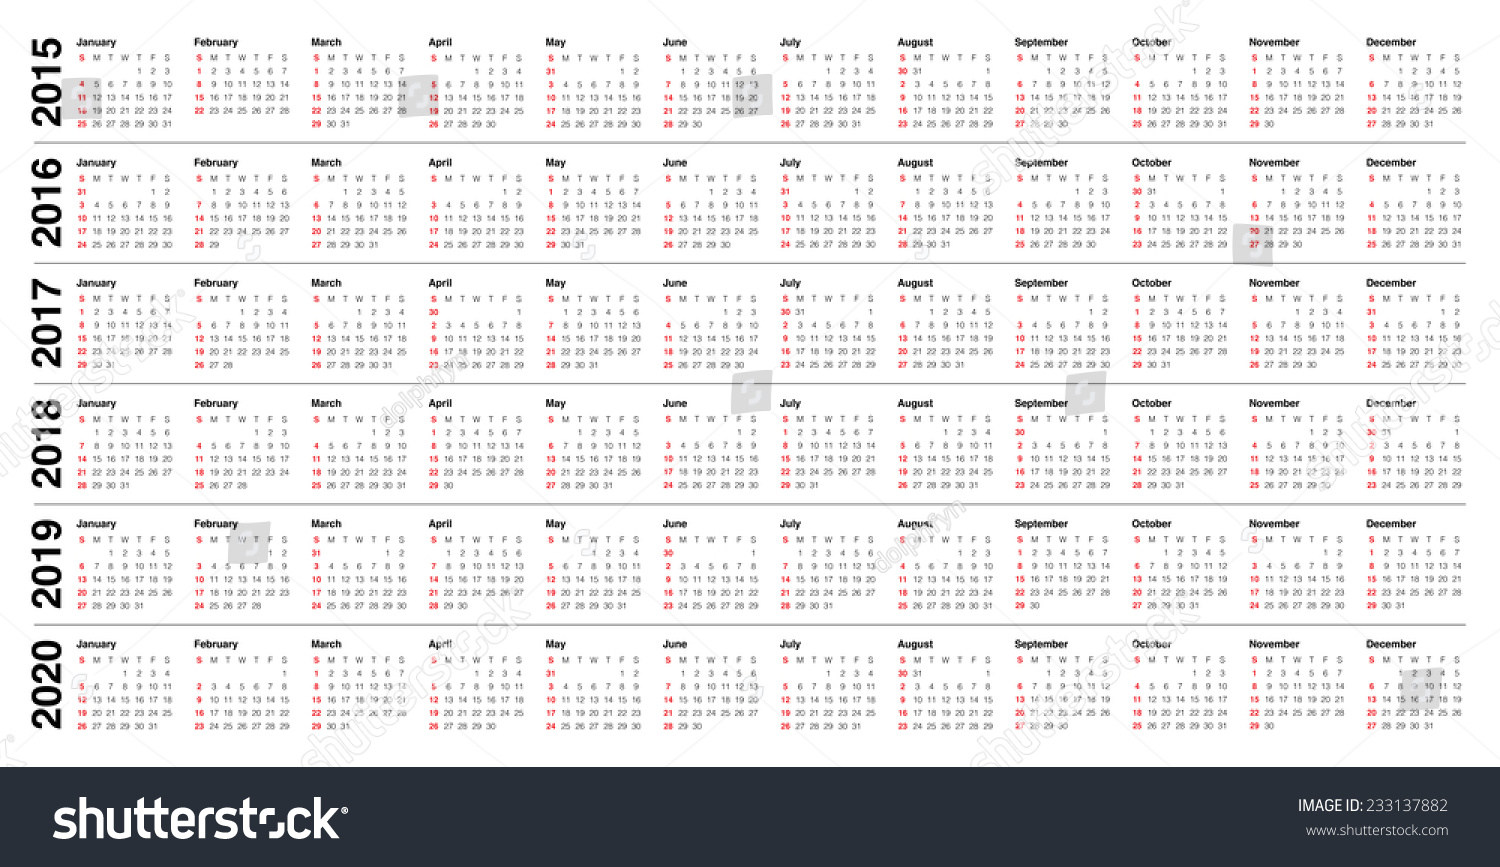 Yearly Calendar 2014 2019 Simple calendar 2015 2016 2017 2018… Stock Photo 233137882